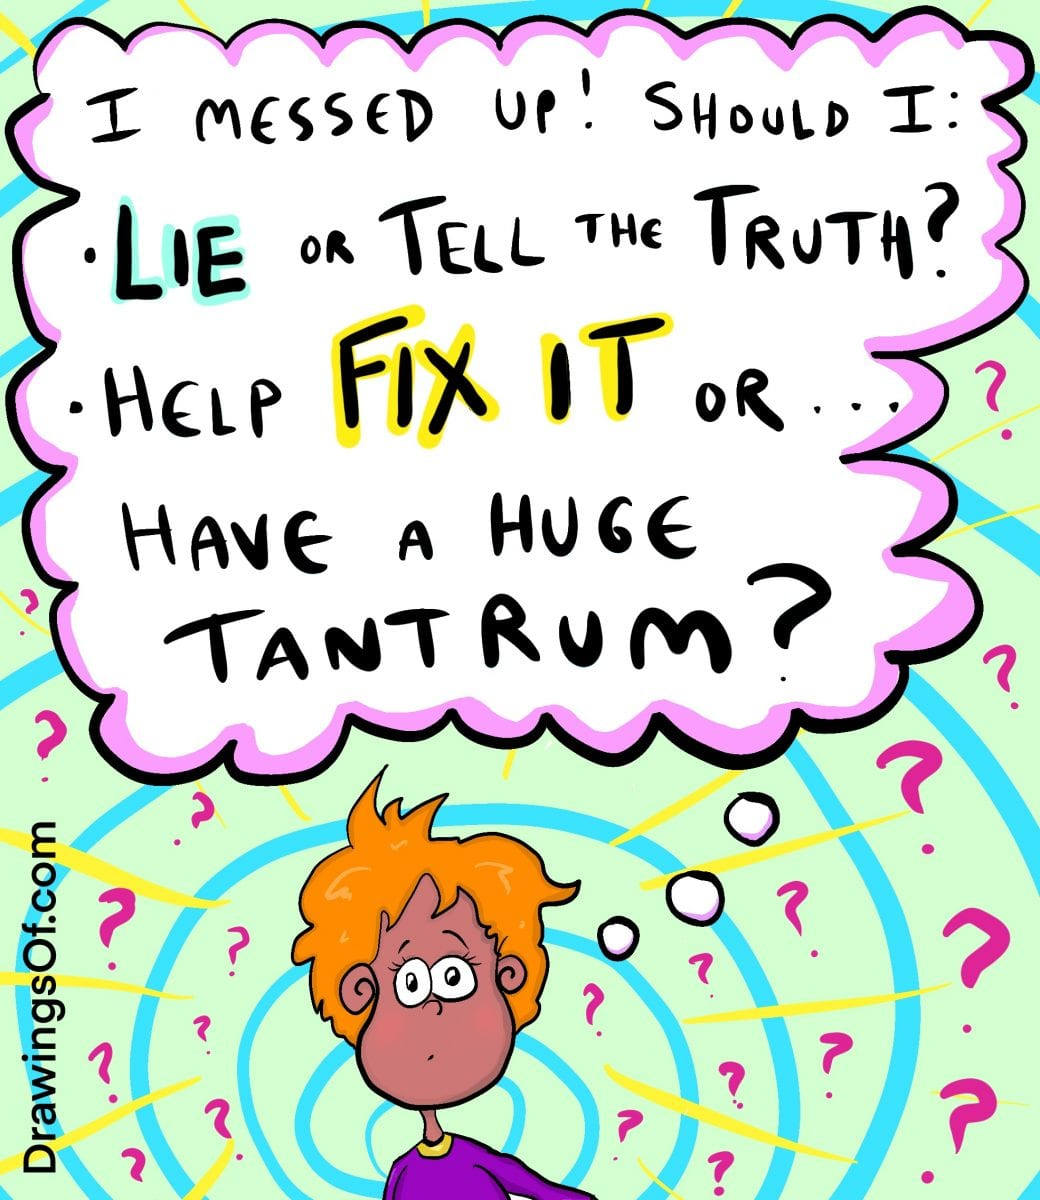 Child deciding what to do after messing up: lie and hide or tell the truth and help?